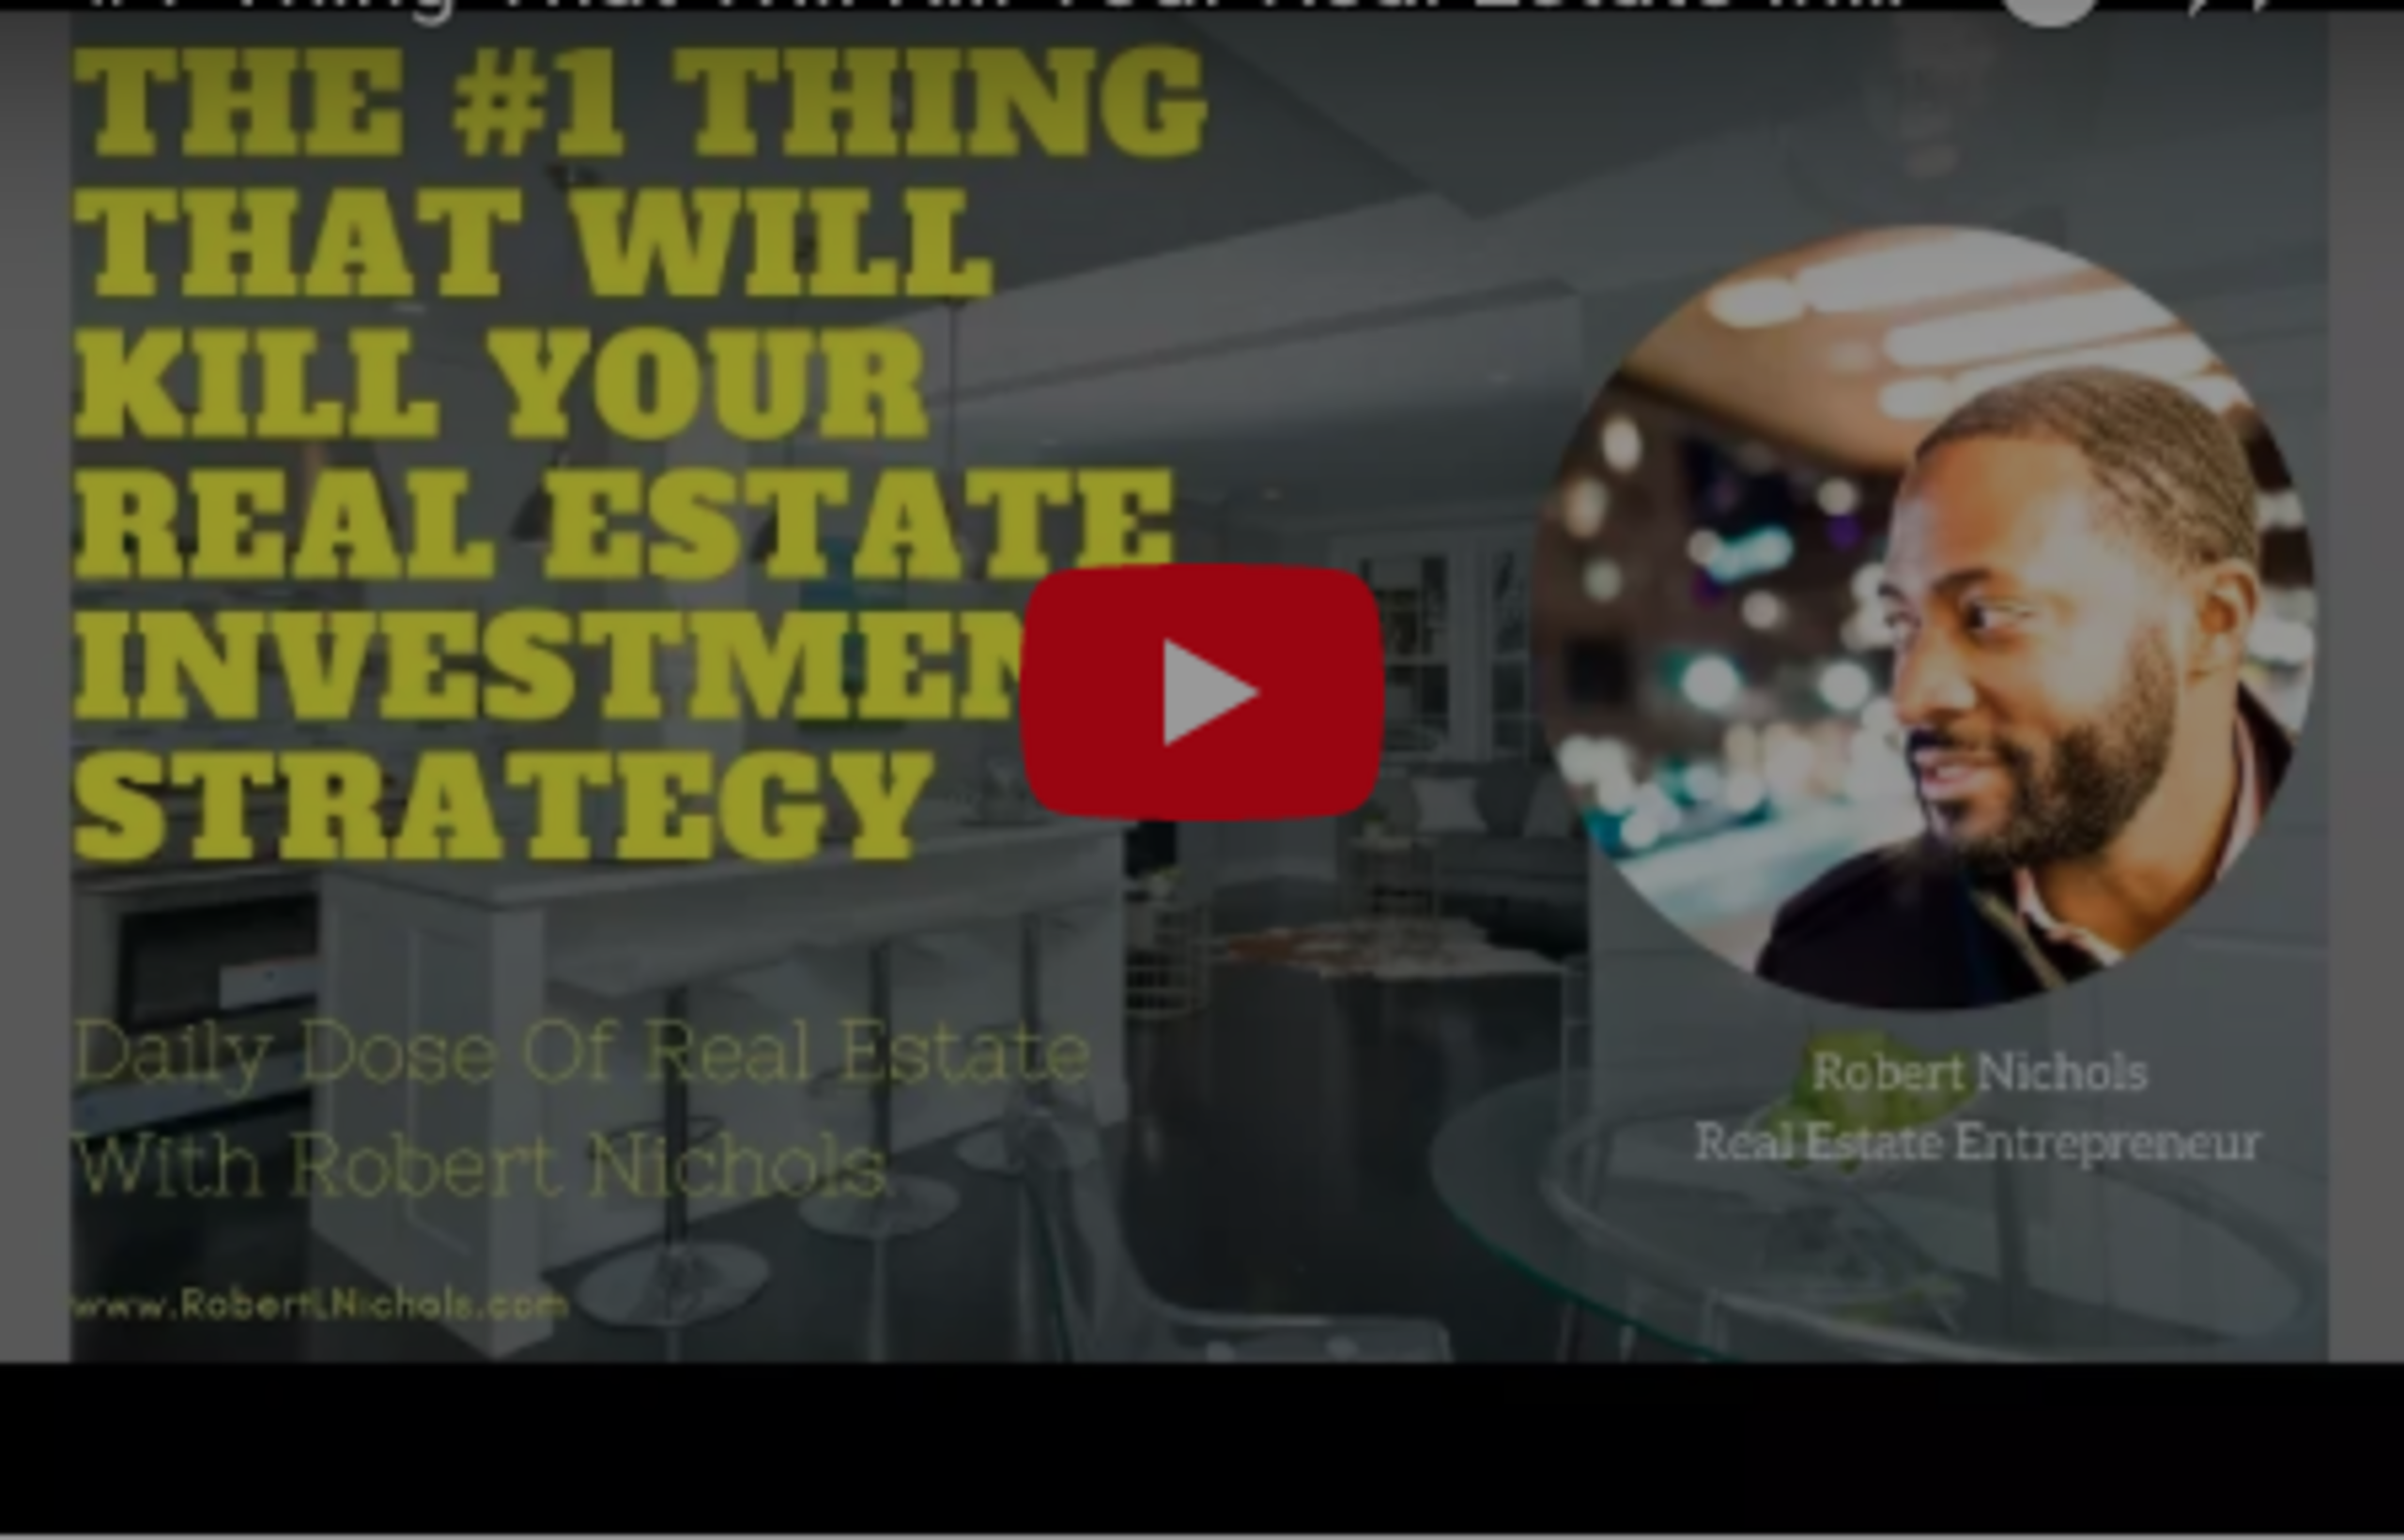 #1 Thing That Will Kill Your Real Estate Investment Strategy